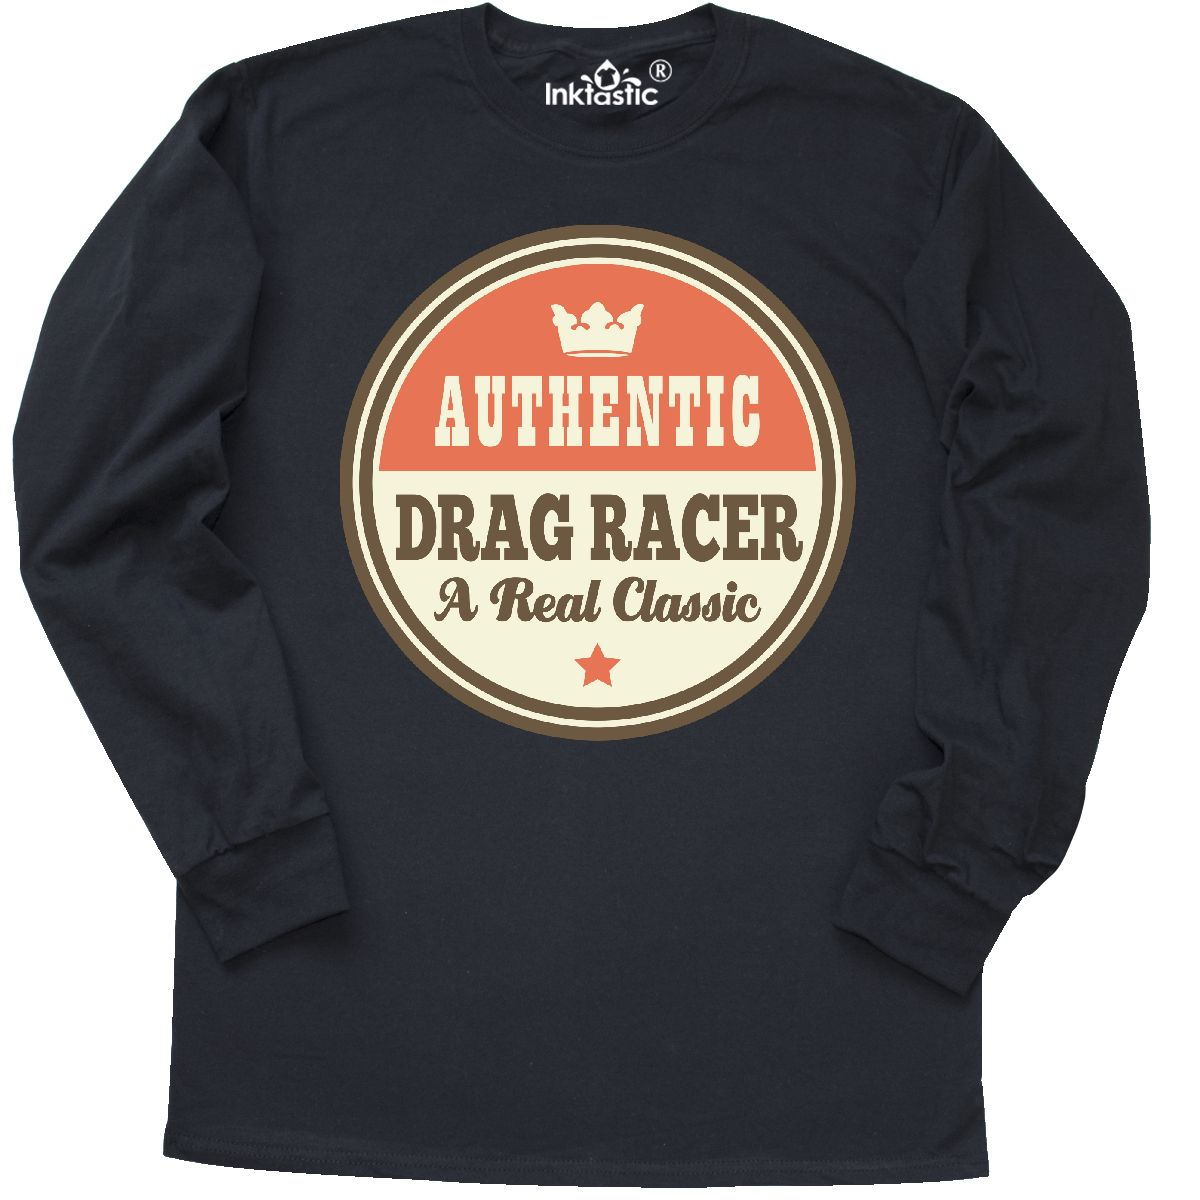 Inktastic Drag Racer Vintage Classic Long Sleeve T-Shirt Gift Retired Retirement